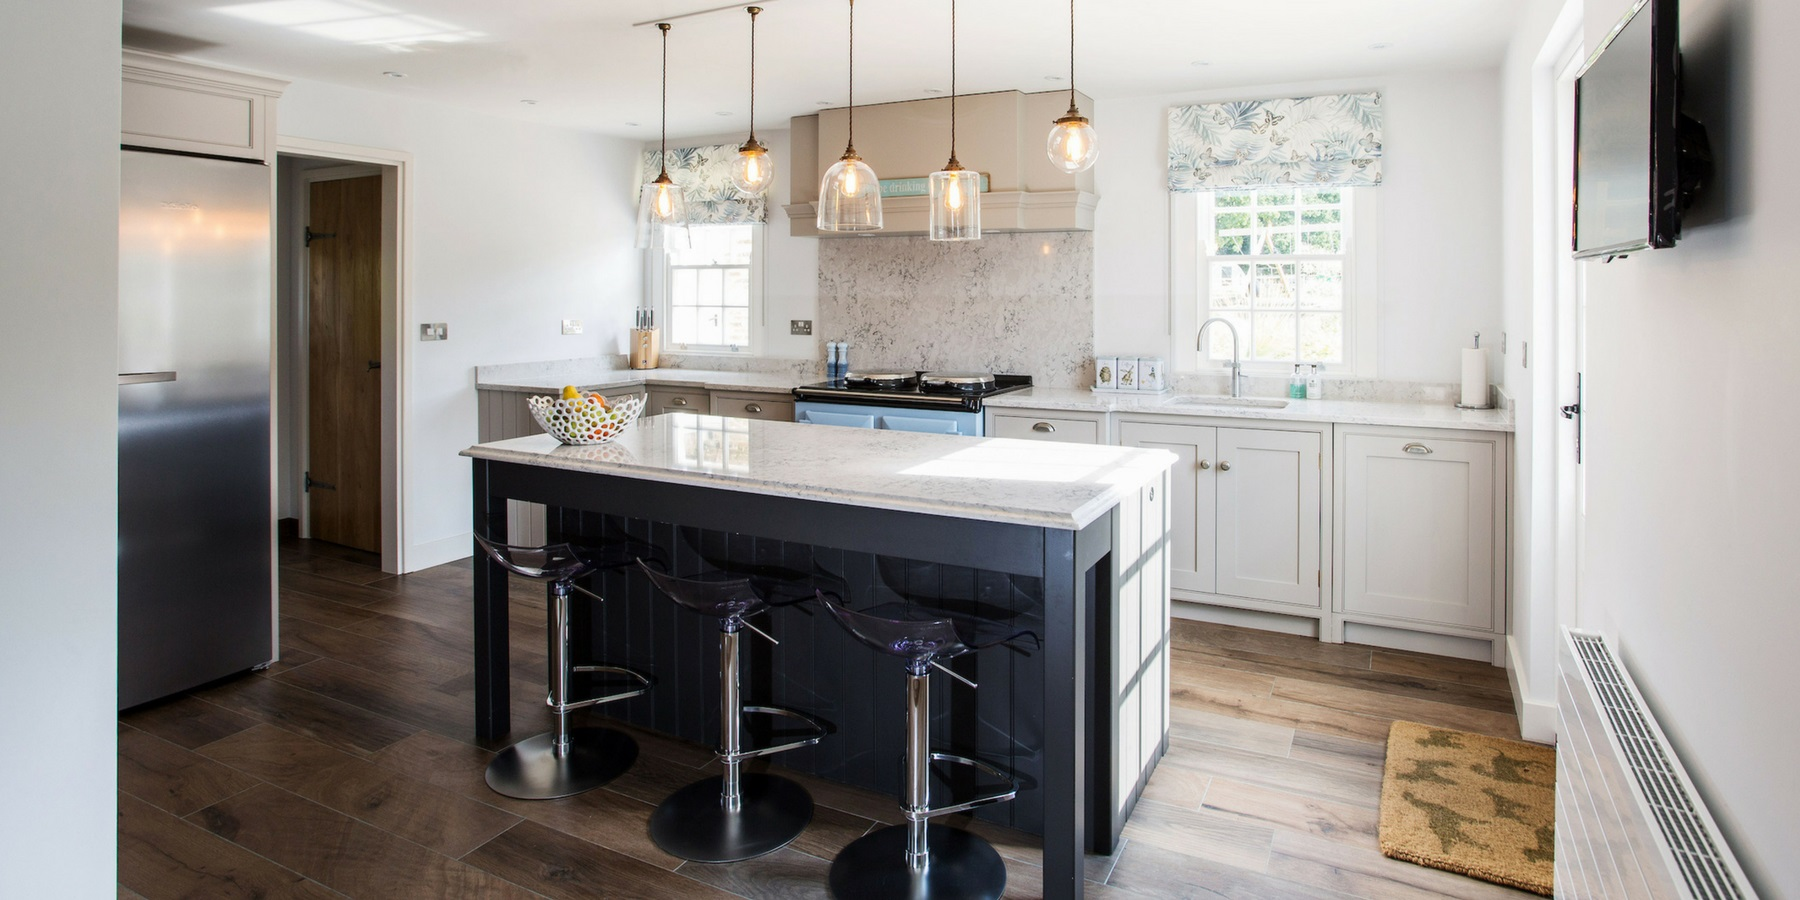 Bespoke Cottage Style Shaker Kitchen - Burlanes handmade Wellsdown kitchen with classic AGA range, central island and beautiful pendant lighting.